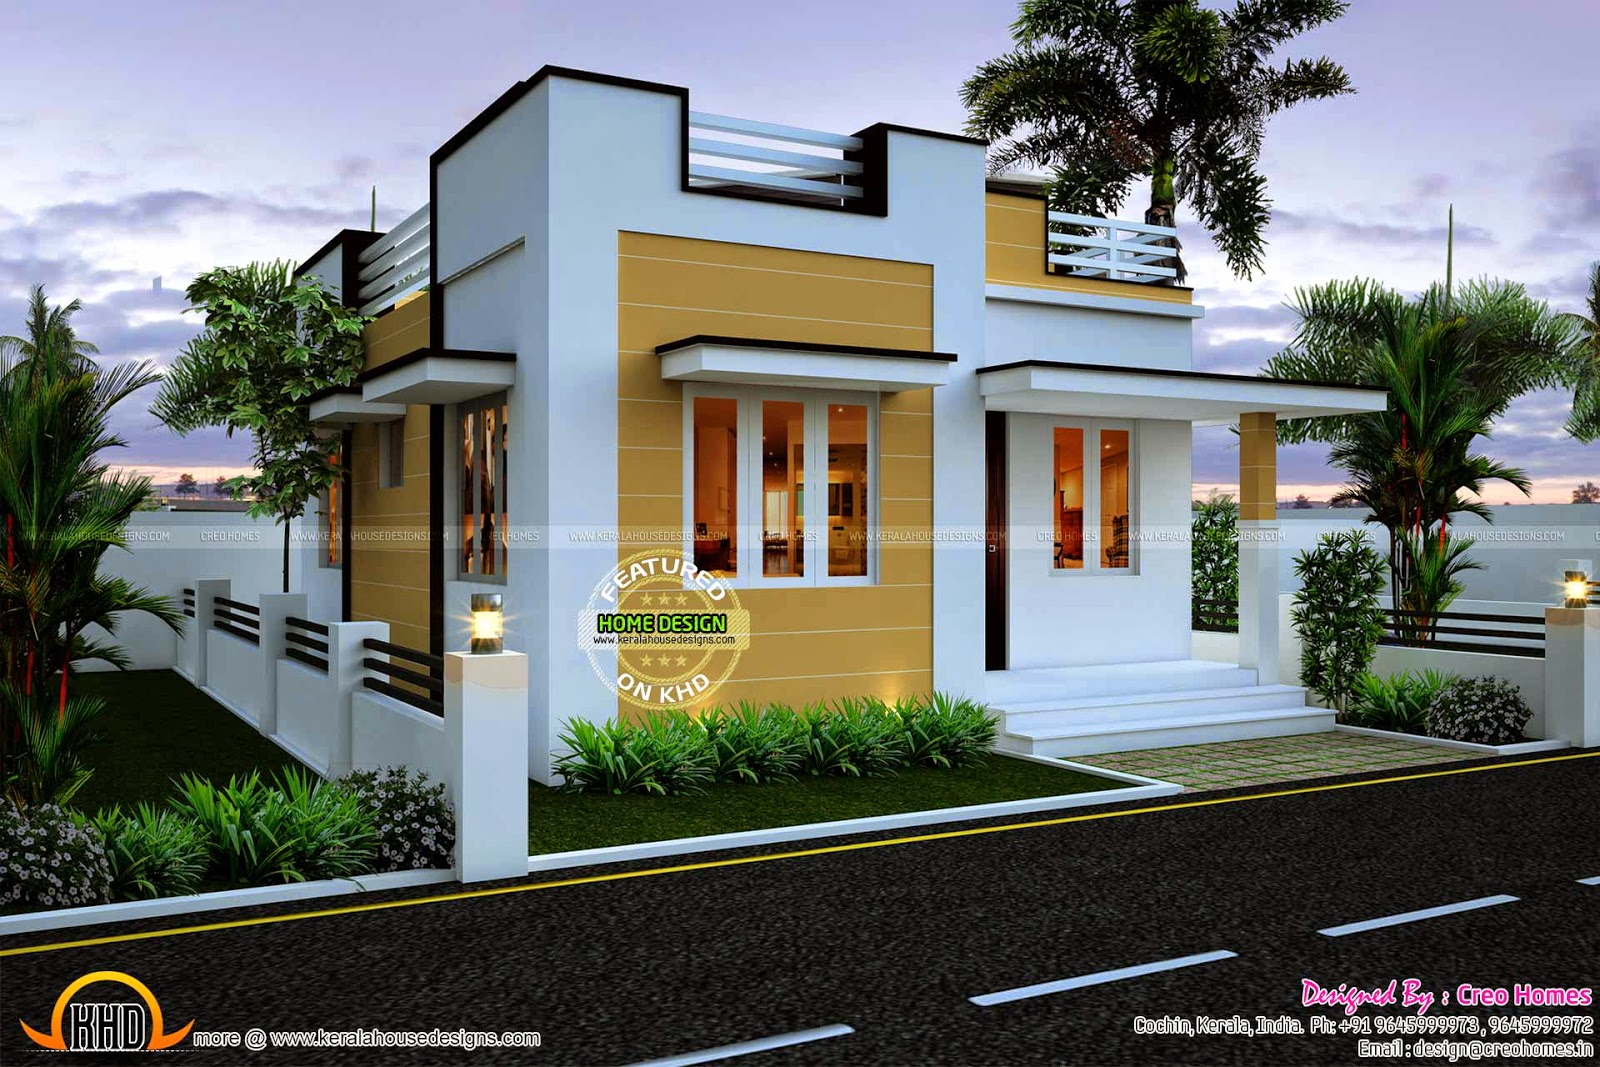 545 Sq Ft Beautiful Kerala Home Plan With Budget Of 5 To 7 Lakh